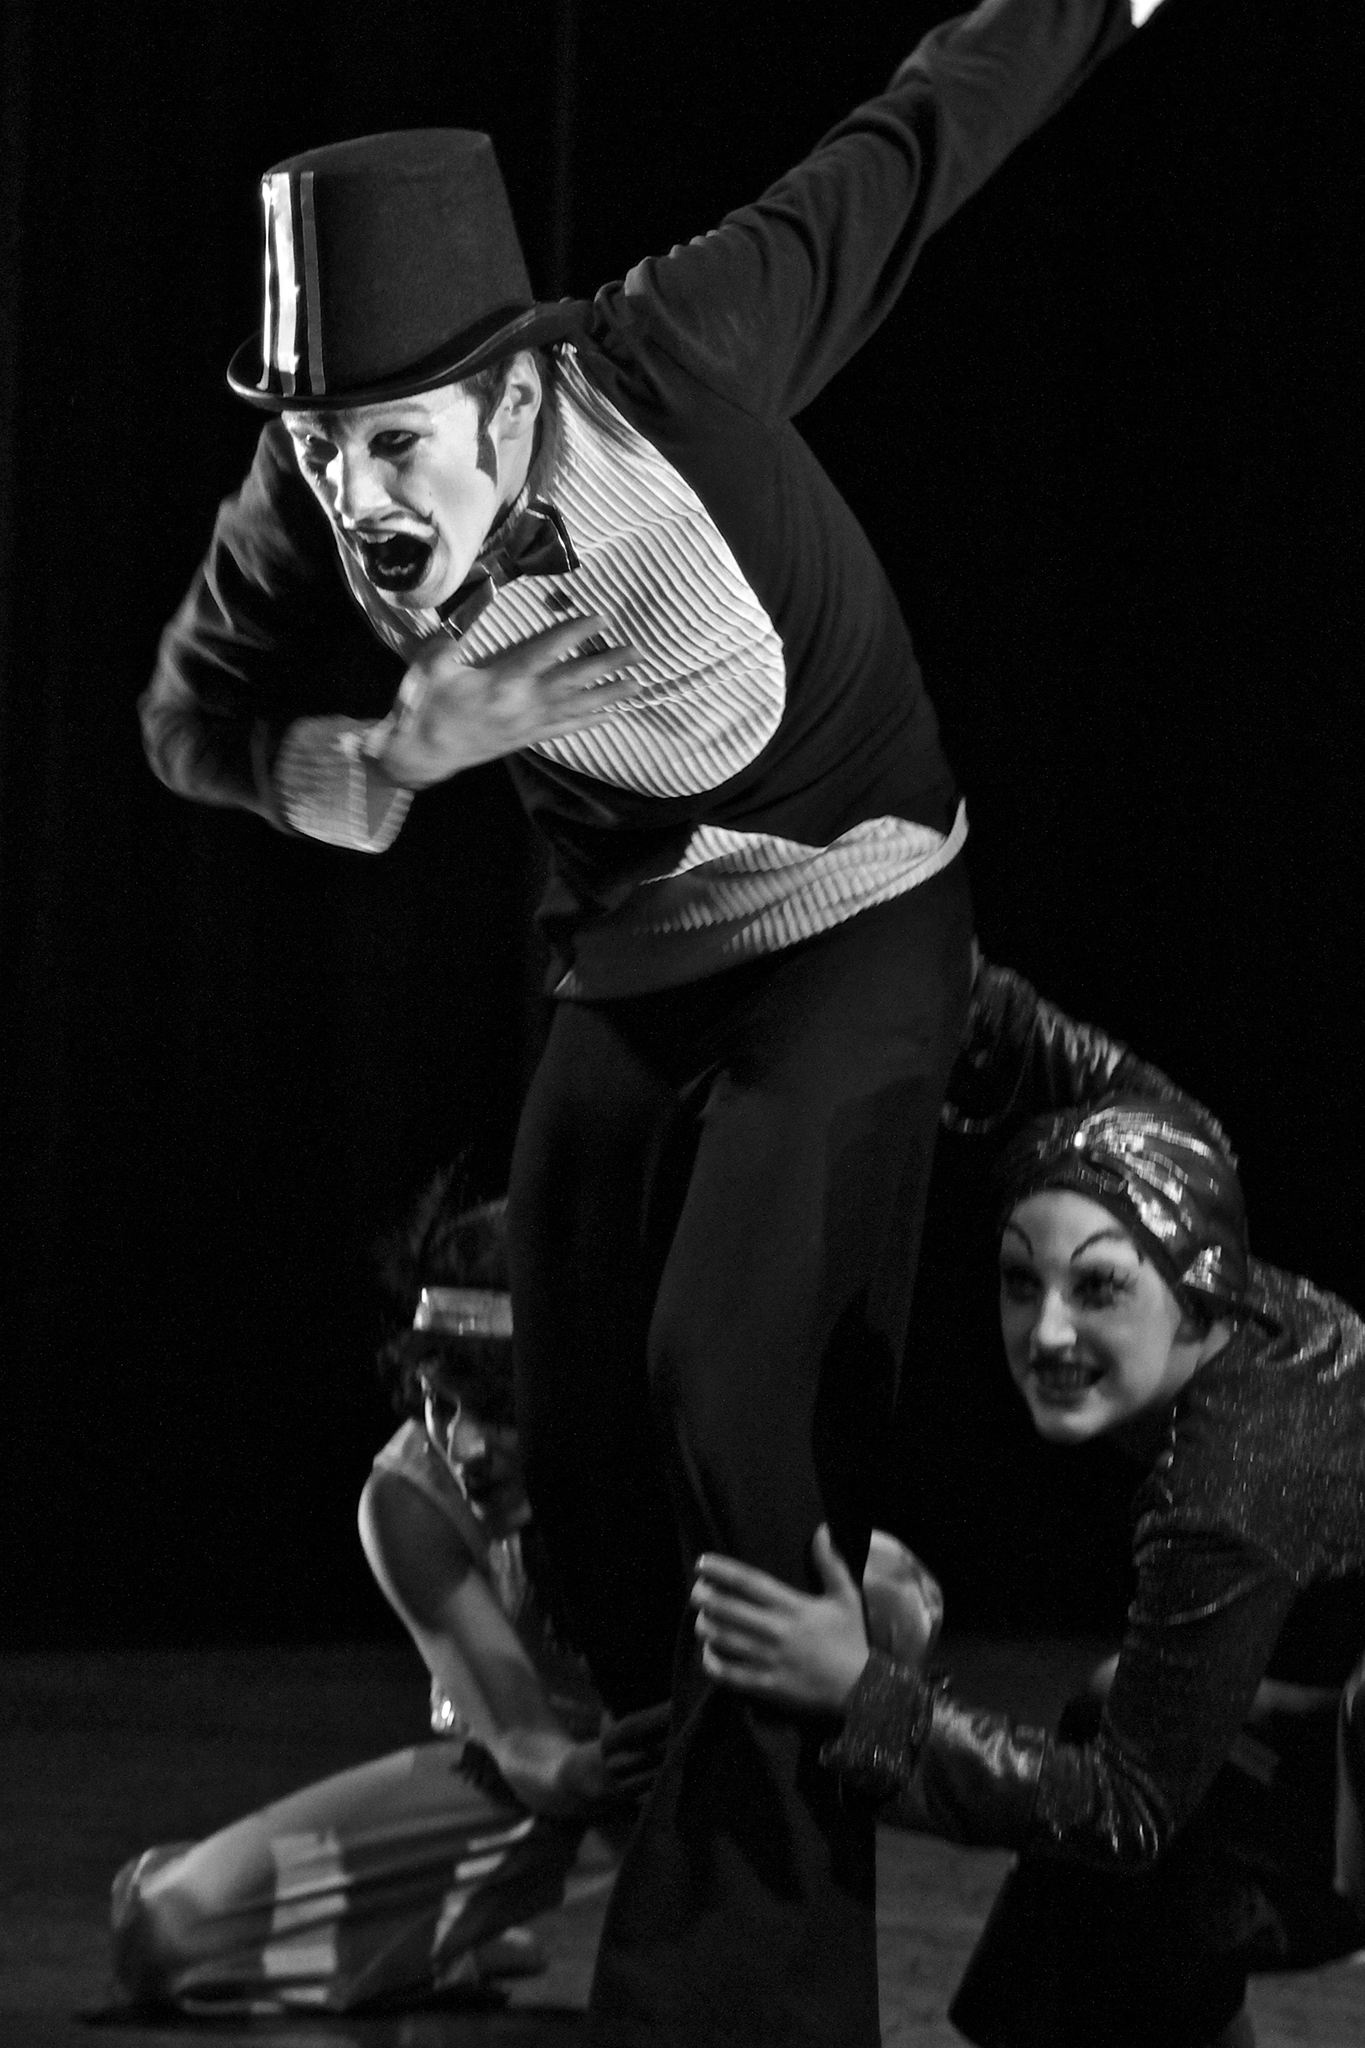 Summit Dance Theatre perform Drumstick and Nacht at the Ivy Theatre, University of Surrey